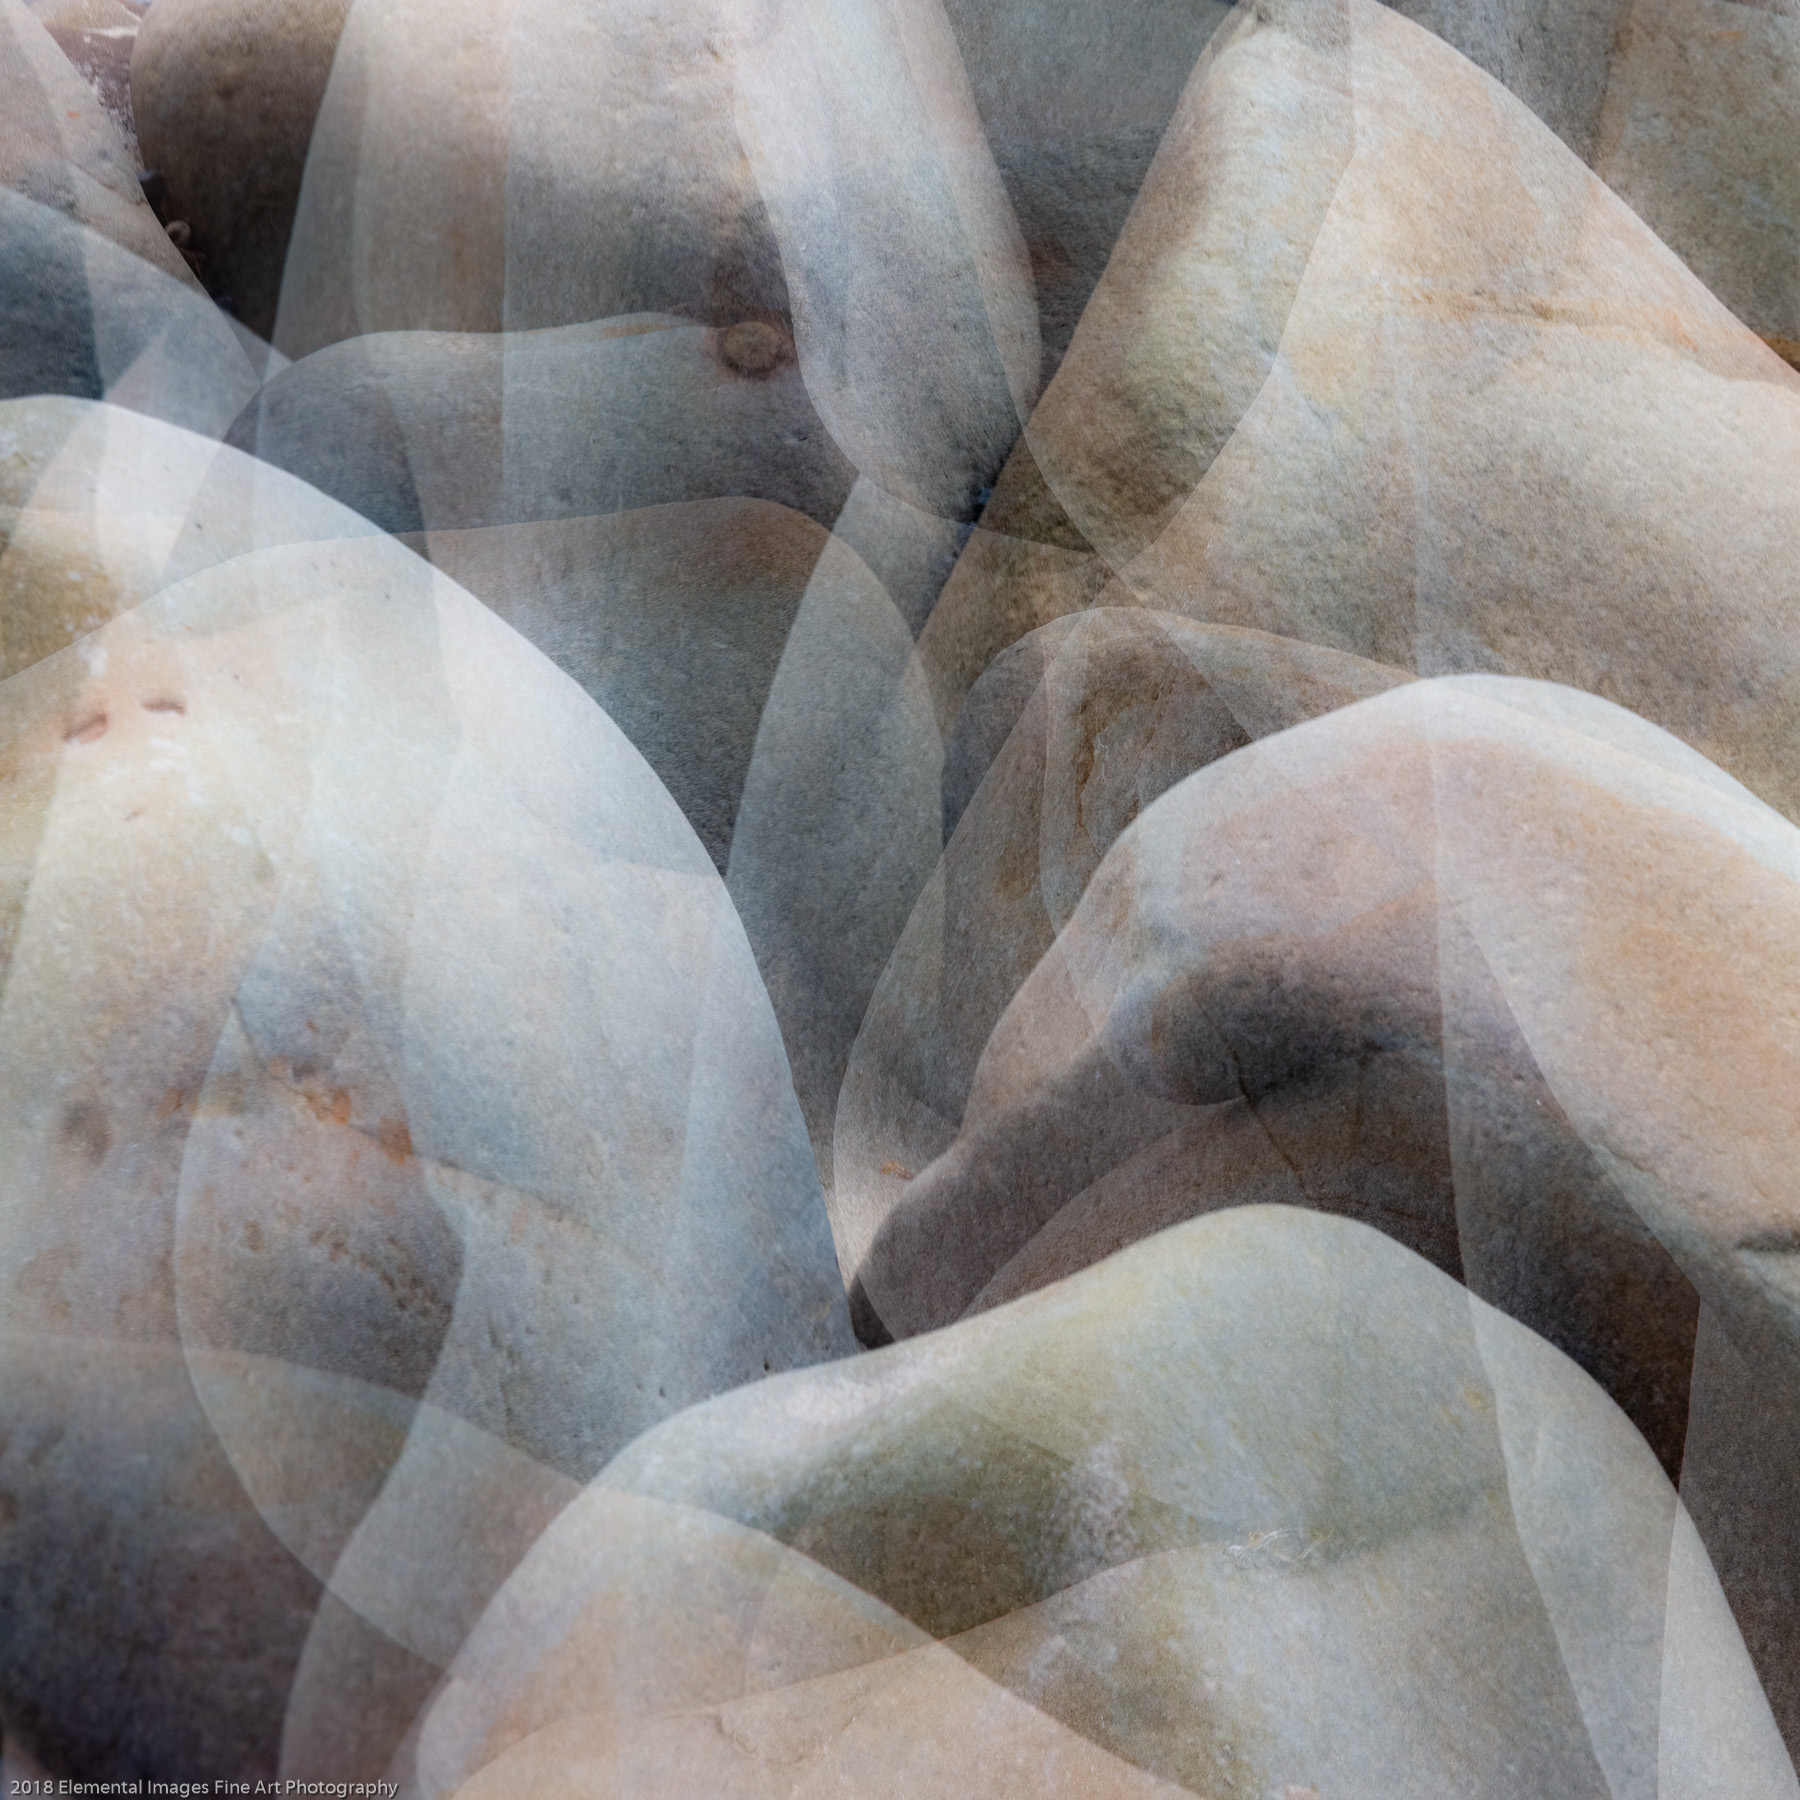 Stones #37   Cape Meares   OR   USA - © 2018 Elemental Images Fine Art Photography - All Rights Reserved Worldwide